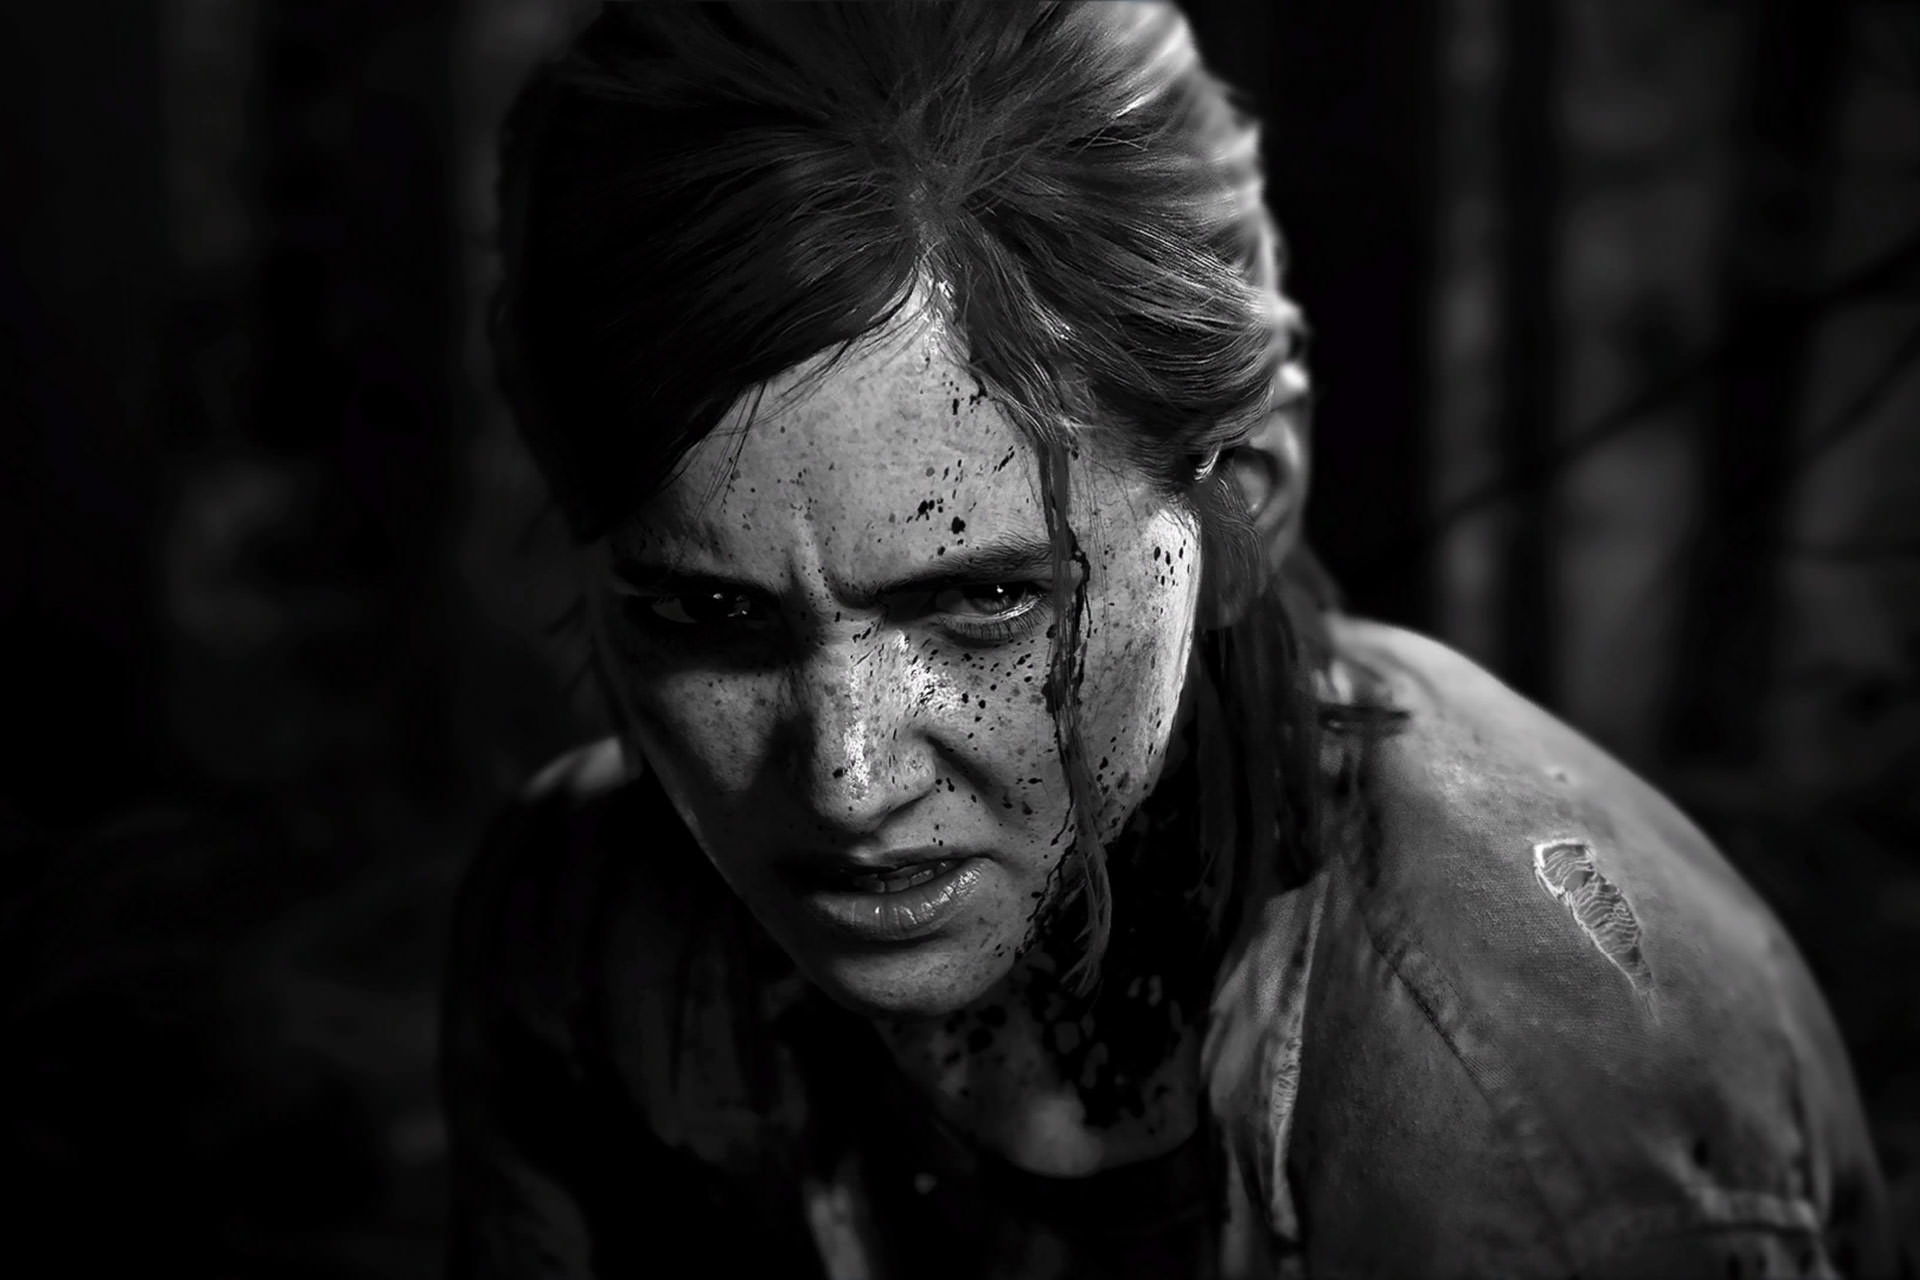 بررسی بازی The Last of Us Part II